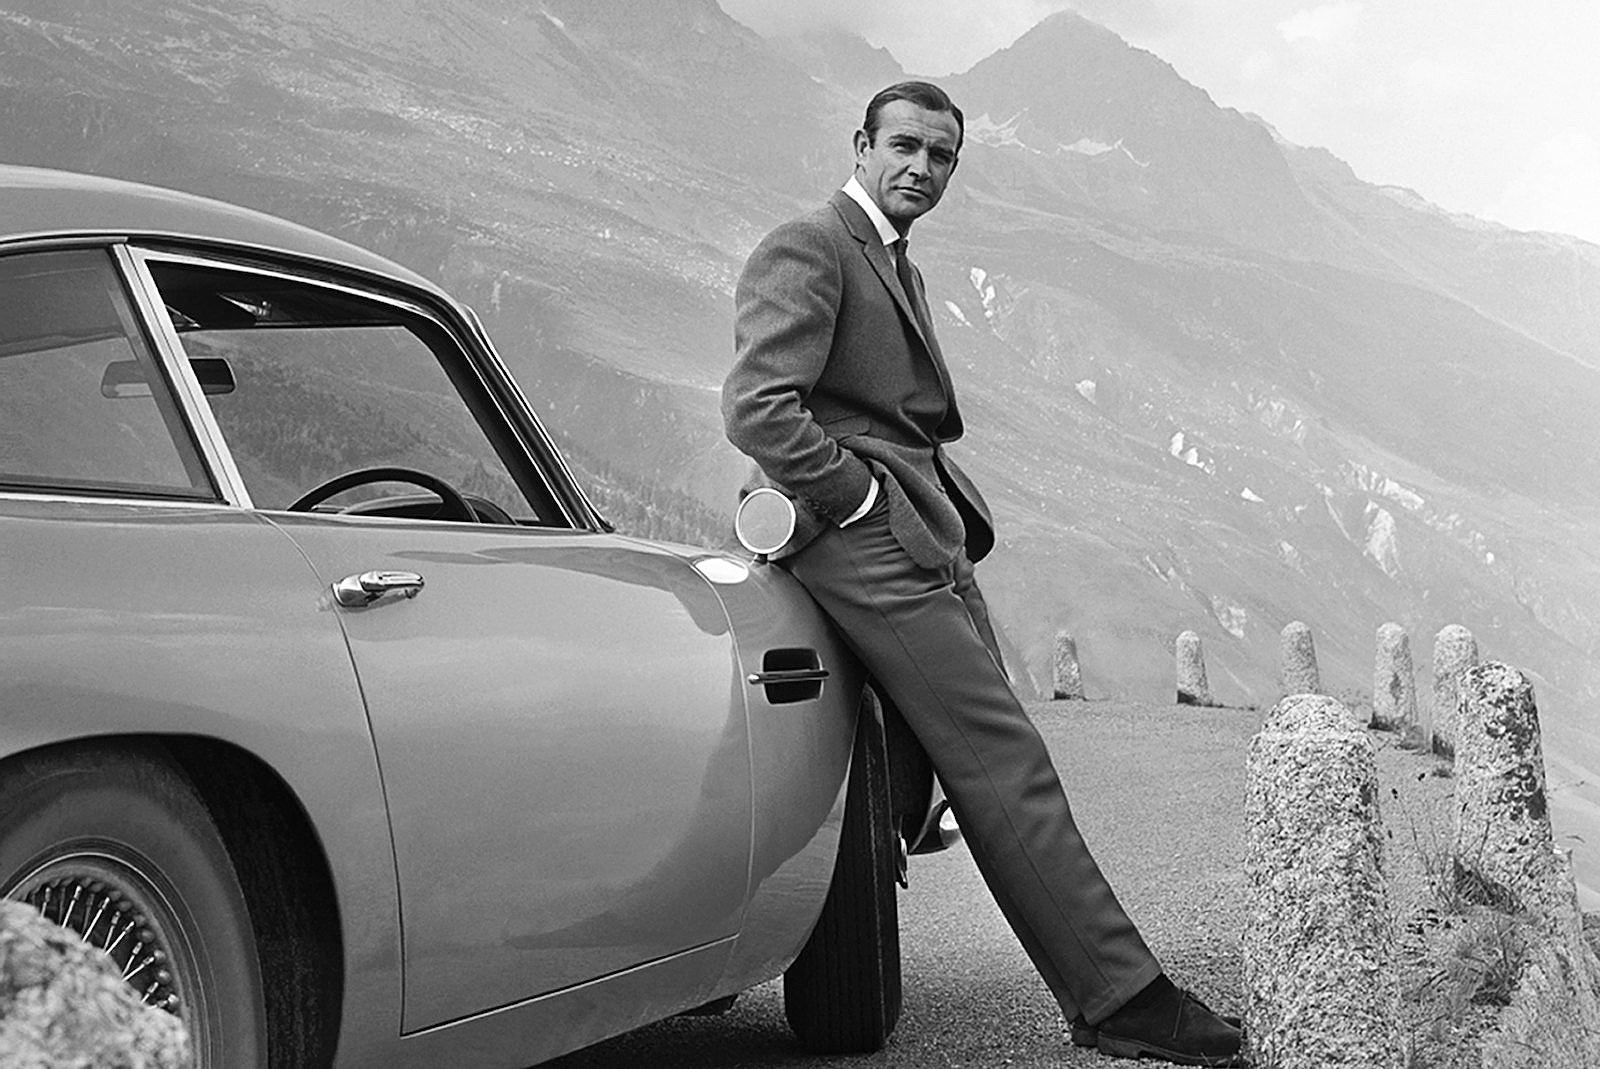 Sean Connery, Iconic James Bond Actor, Dies at 90